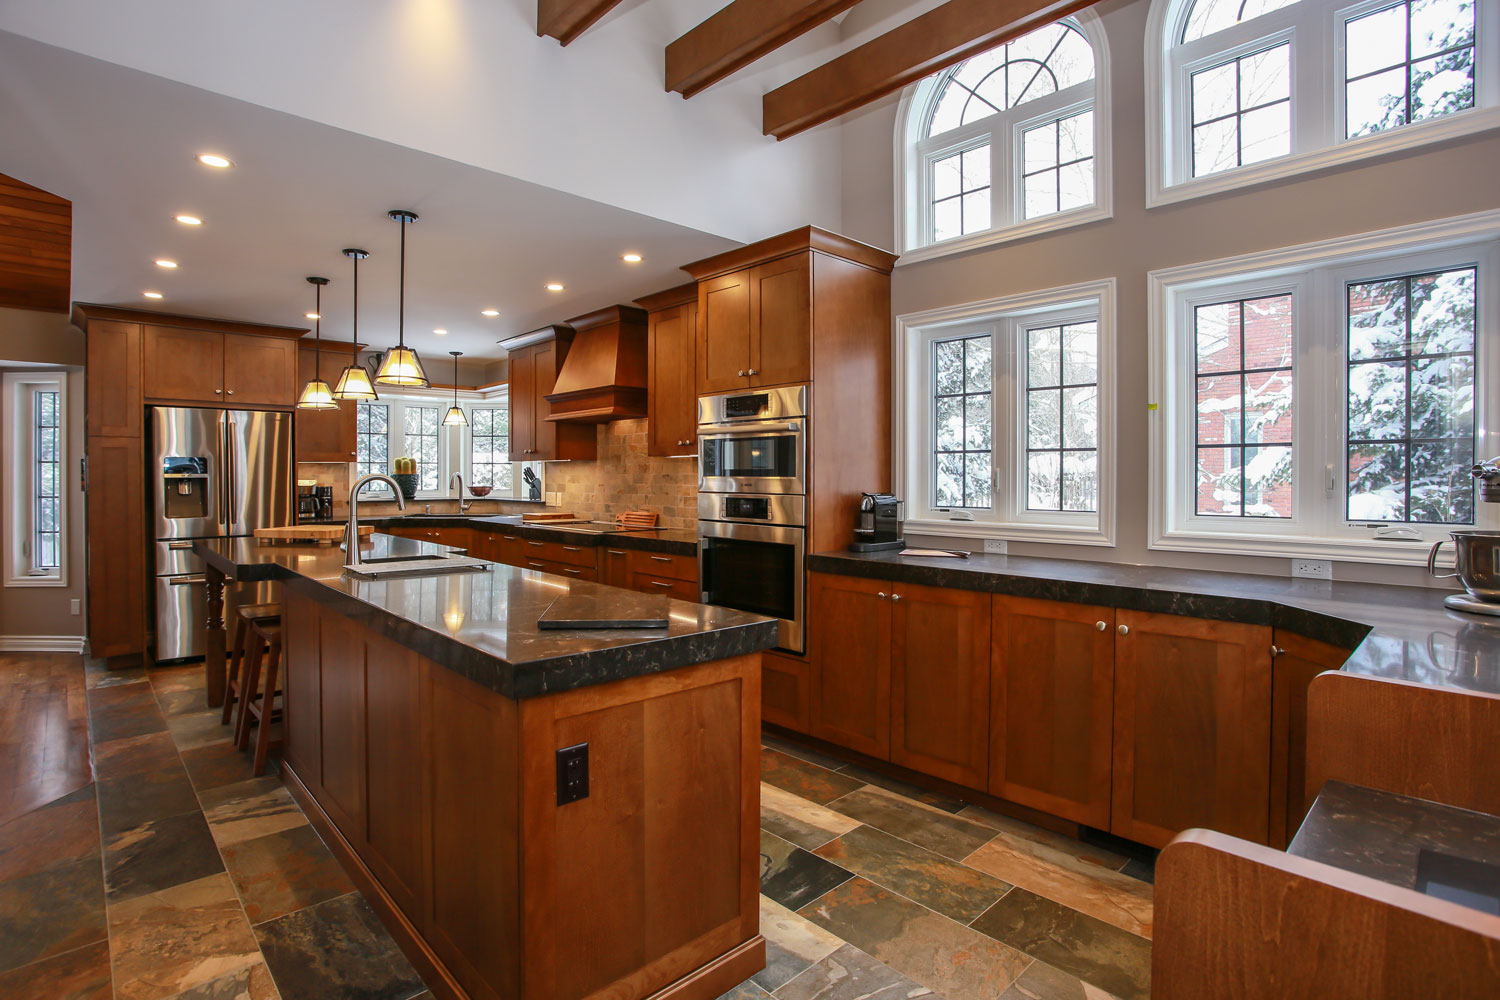 Luxury open concept kitchen with rich wood cabinets, granite countertops, vaulted ceiling with wood ceiling beams and arched windows - Total Living Concepts barrie ontario